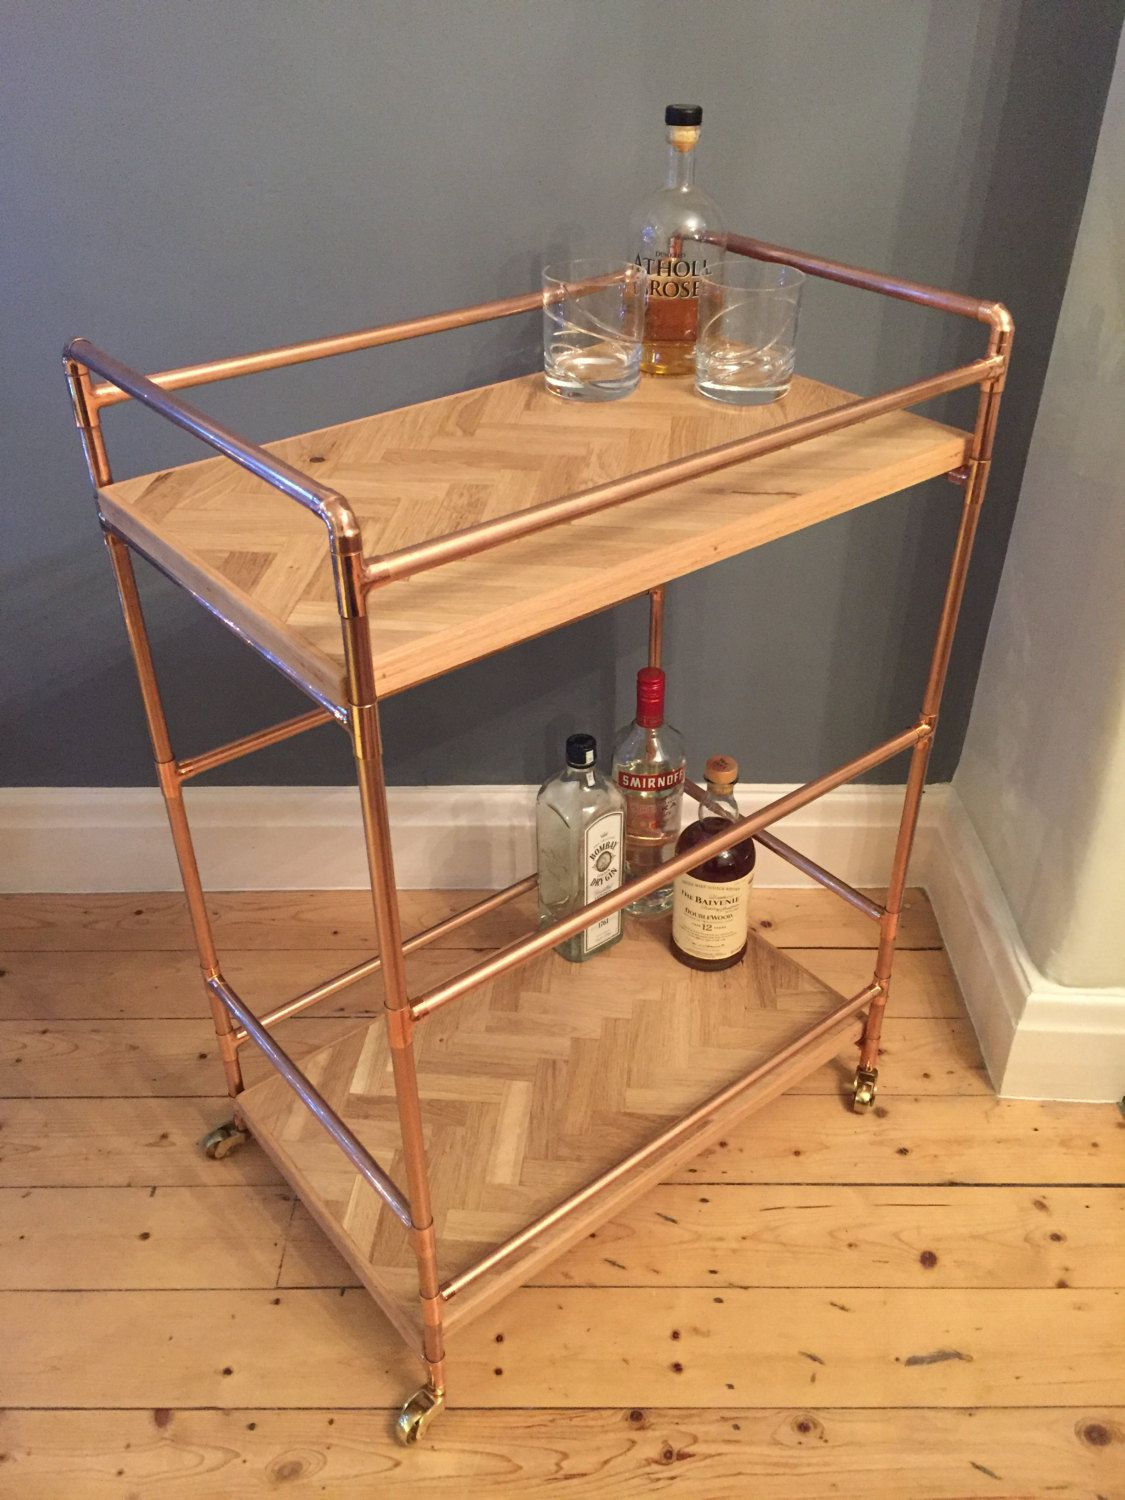 2 Tier Drinks Trolley In A Retro Industrial Style With A Copper Pipe Frame And Reclaimed Oak